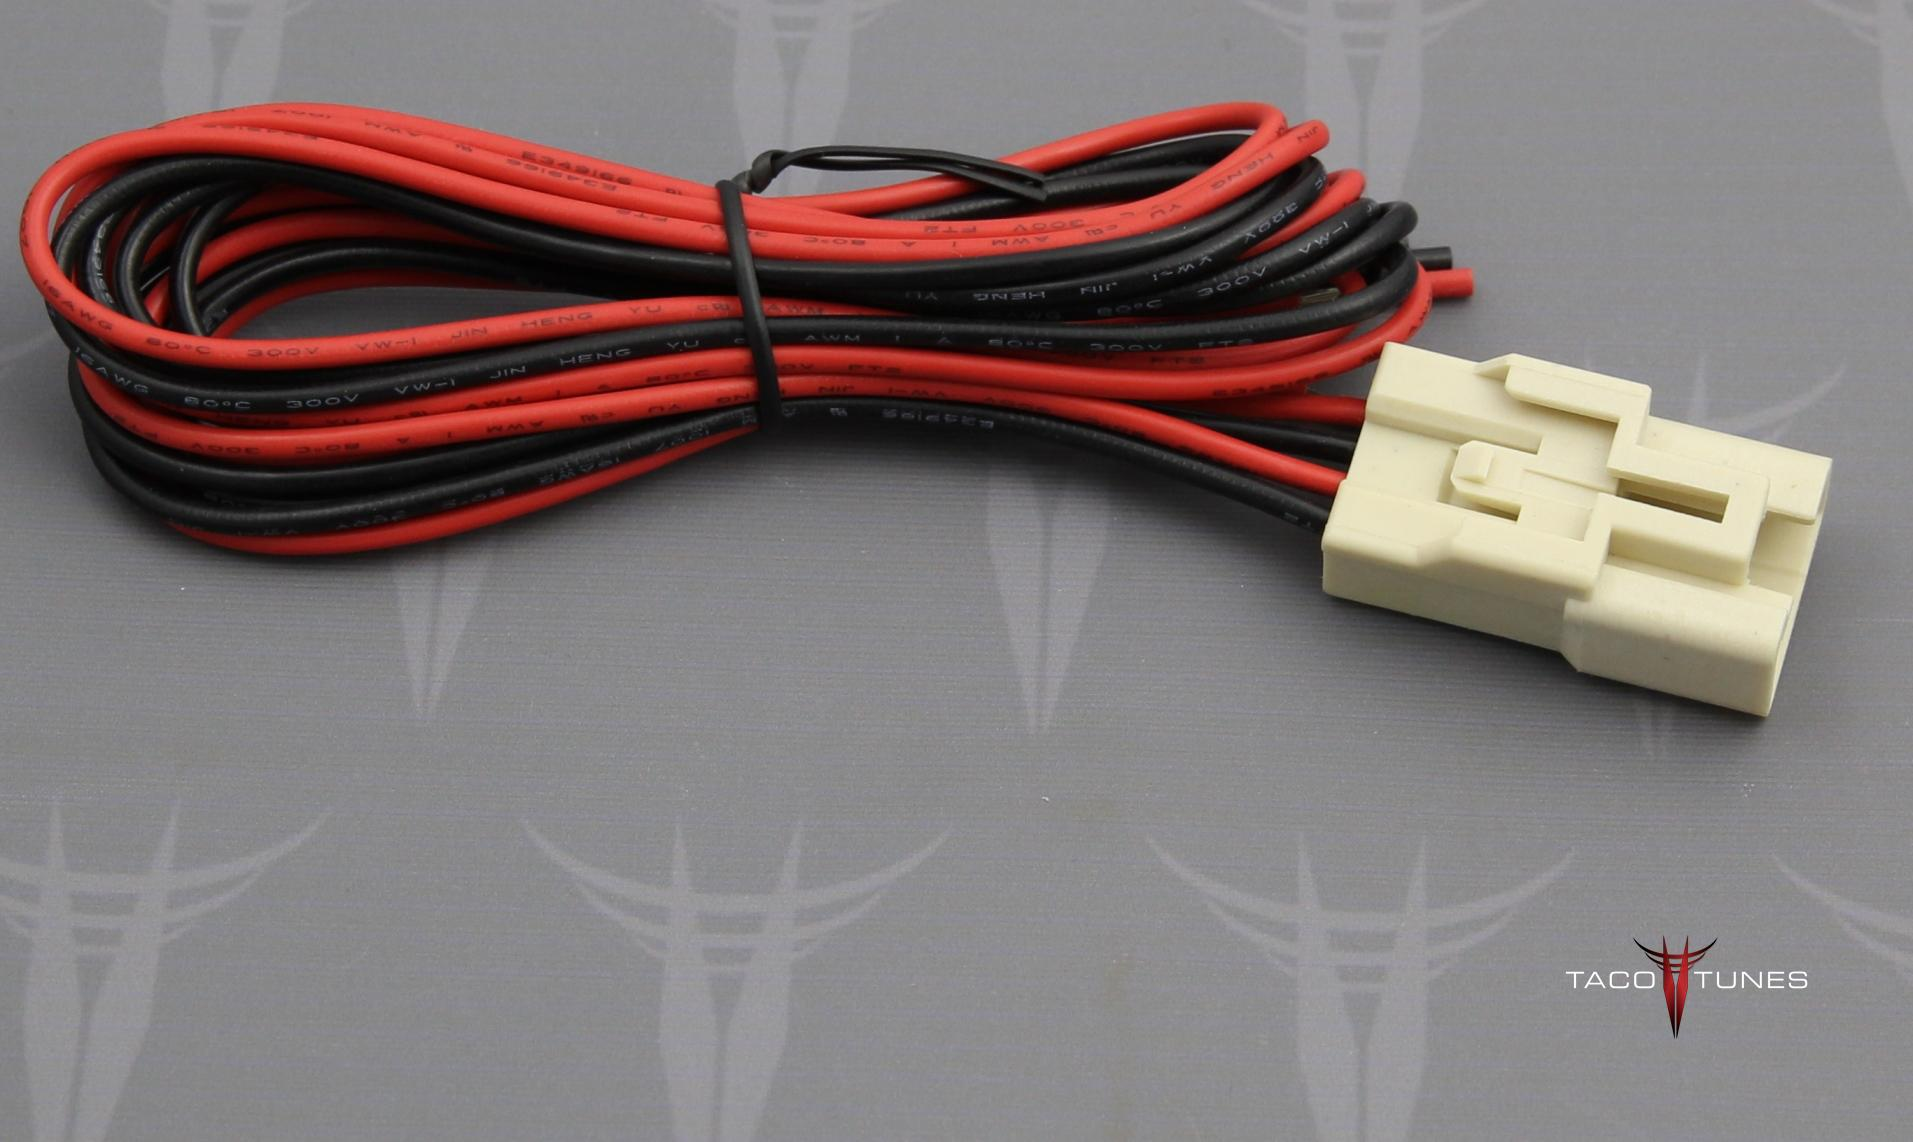 Jvc Wiring Harness Adapter 2000 Tundra Just Wirings Diagram Axxess Interface 2007 2013 Toyota Tweeter Wire Adapters Rh Tacotunes Com Car Stereo